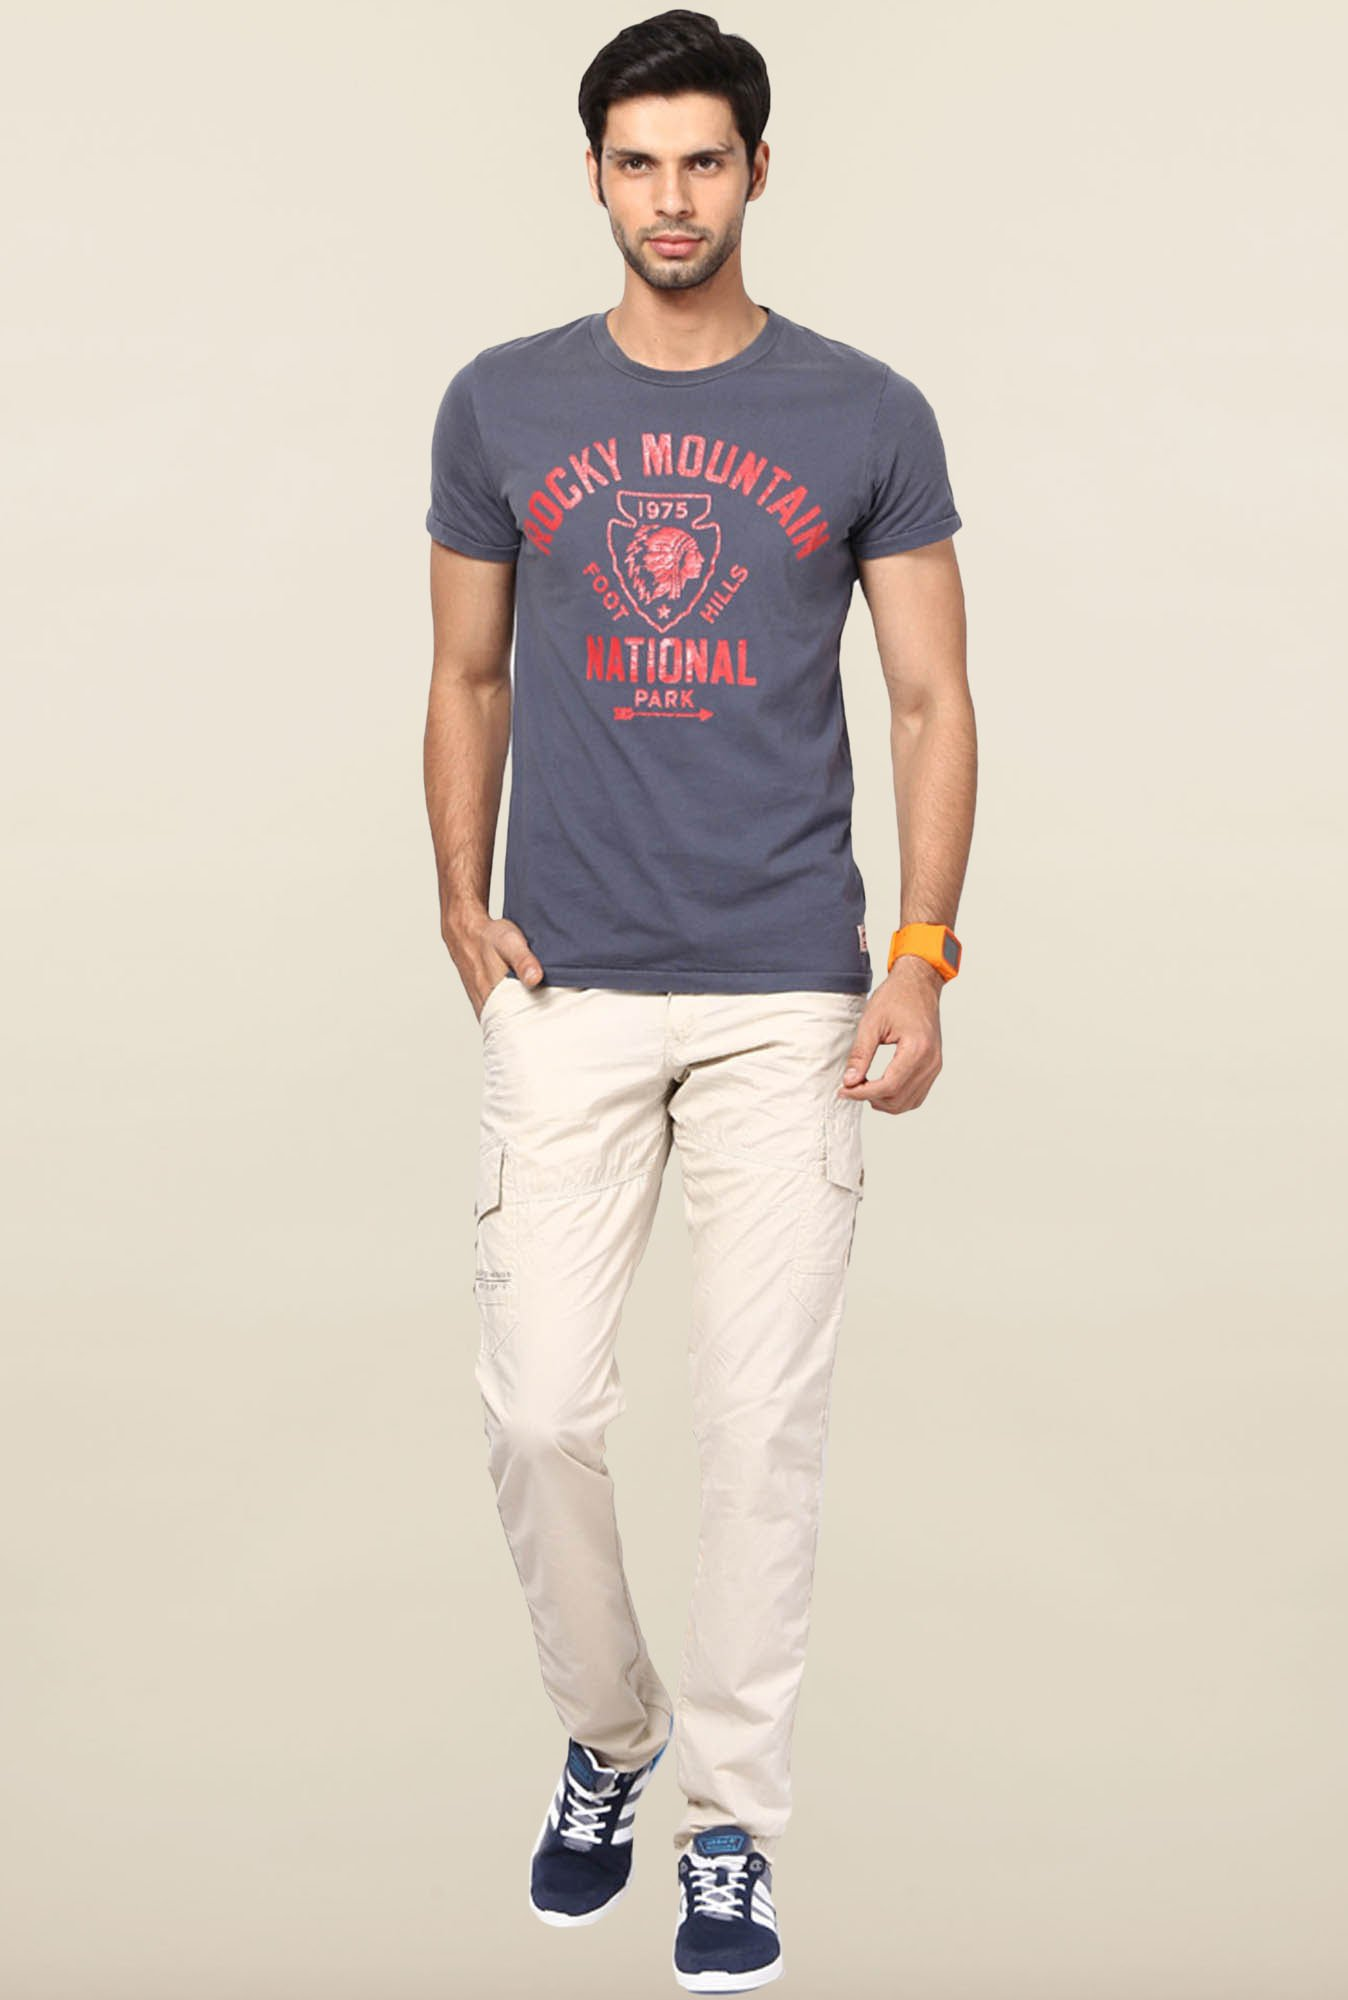 Jack & Jones Blue Crew Neck T-Shirt